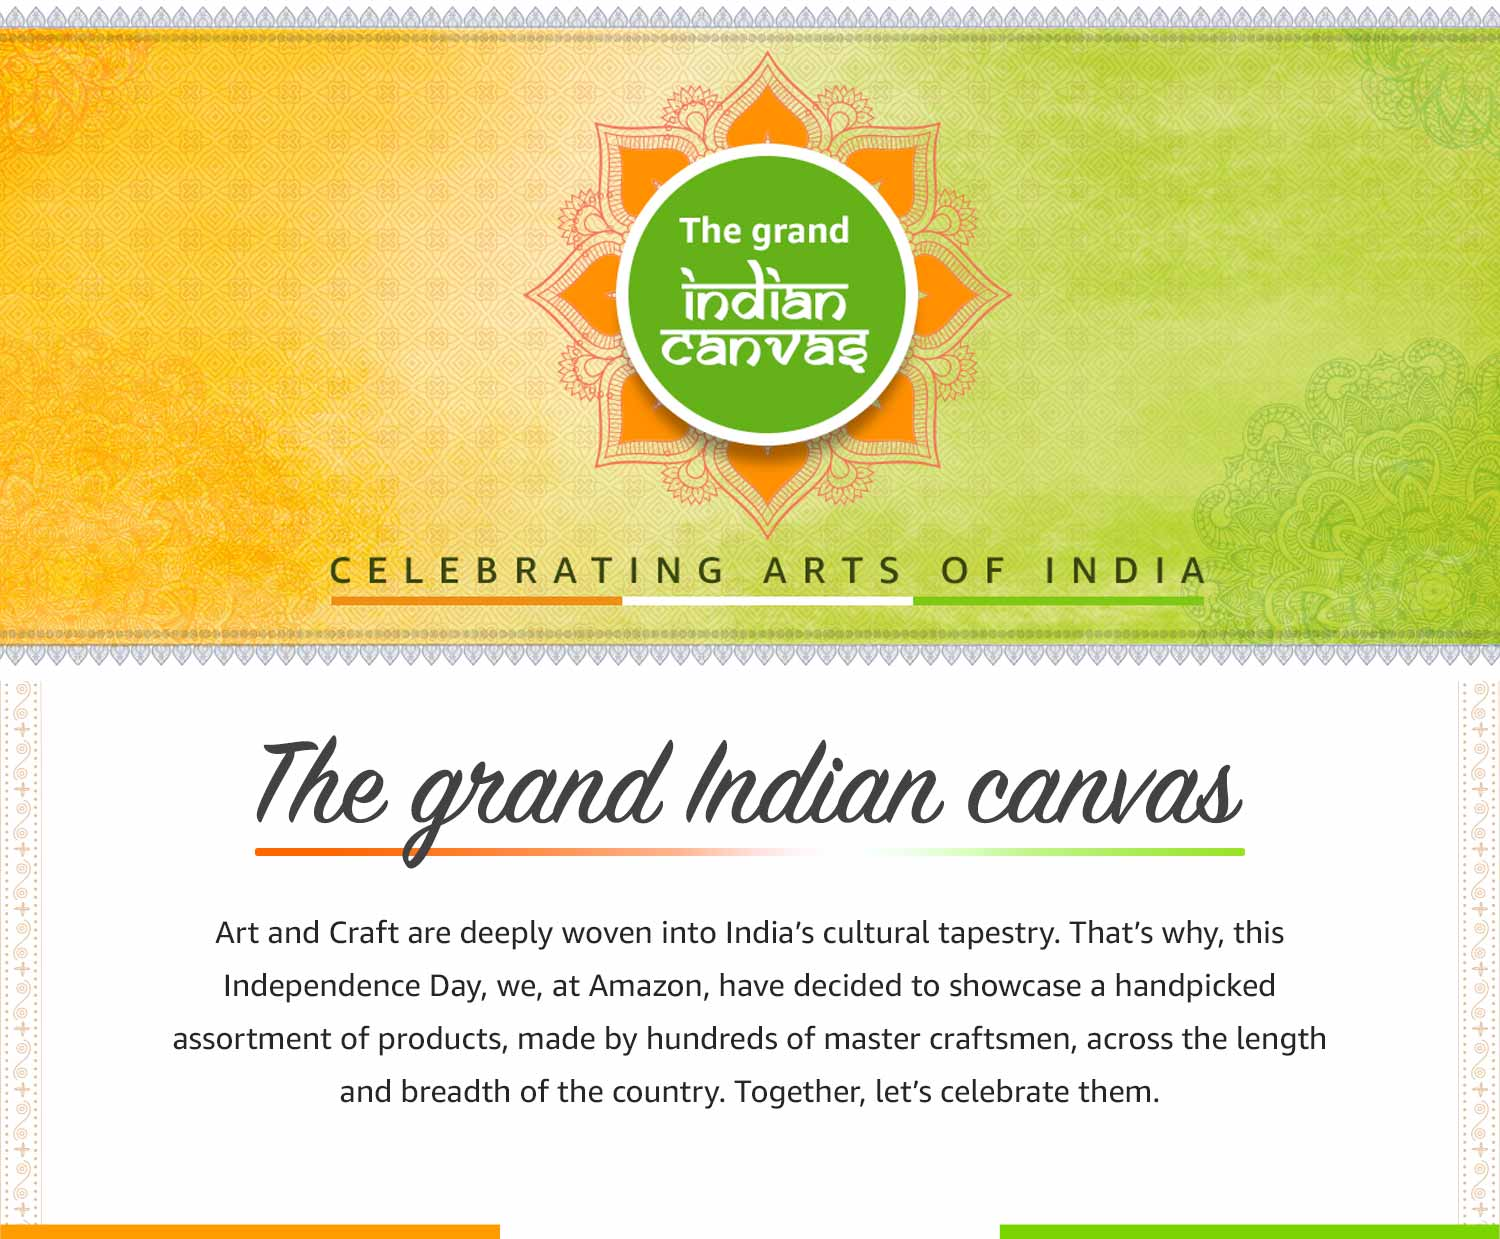 The grand indian canvas